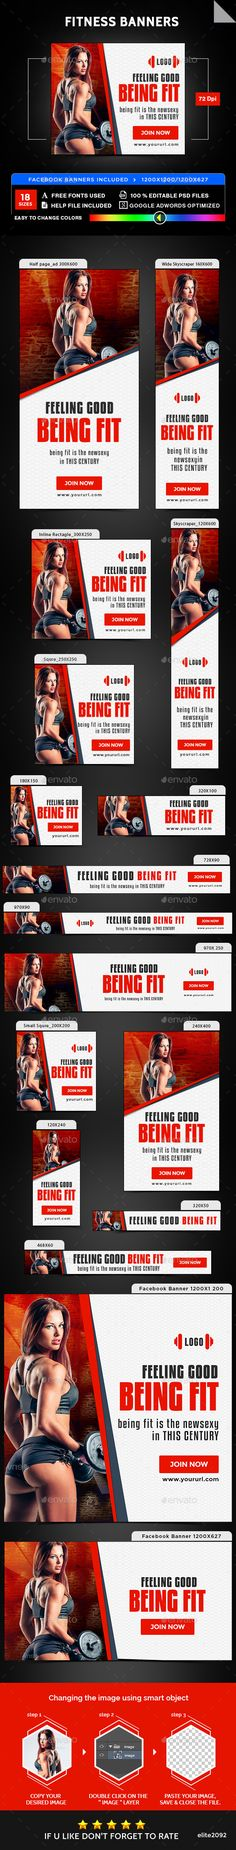 Fitness Banners - Banners & Ads Web Elements Download here : https://graphicriver.net/item/fitness-banners/19279264?s_rank=61&ref=Al-fatih